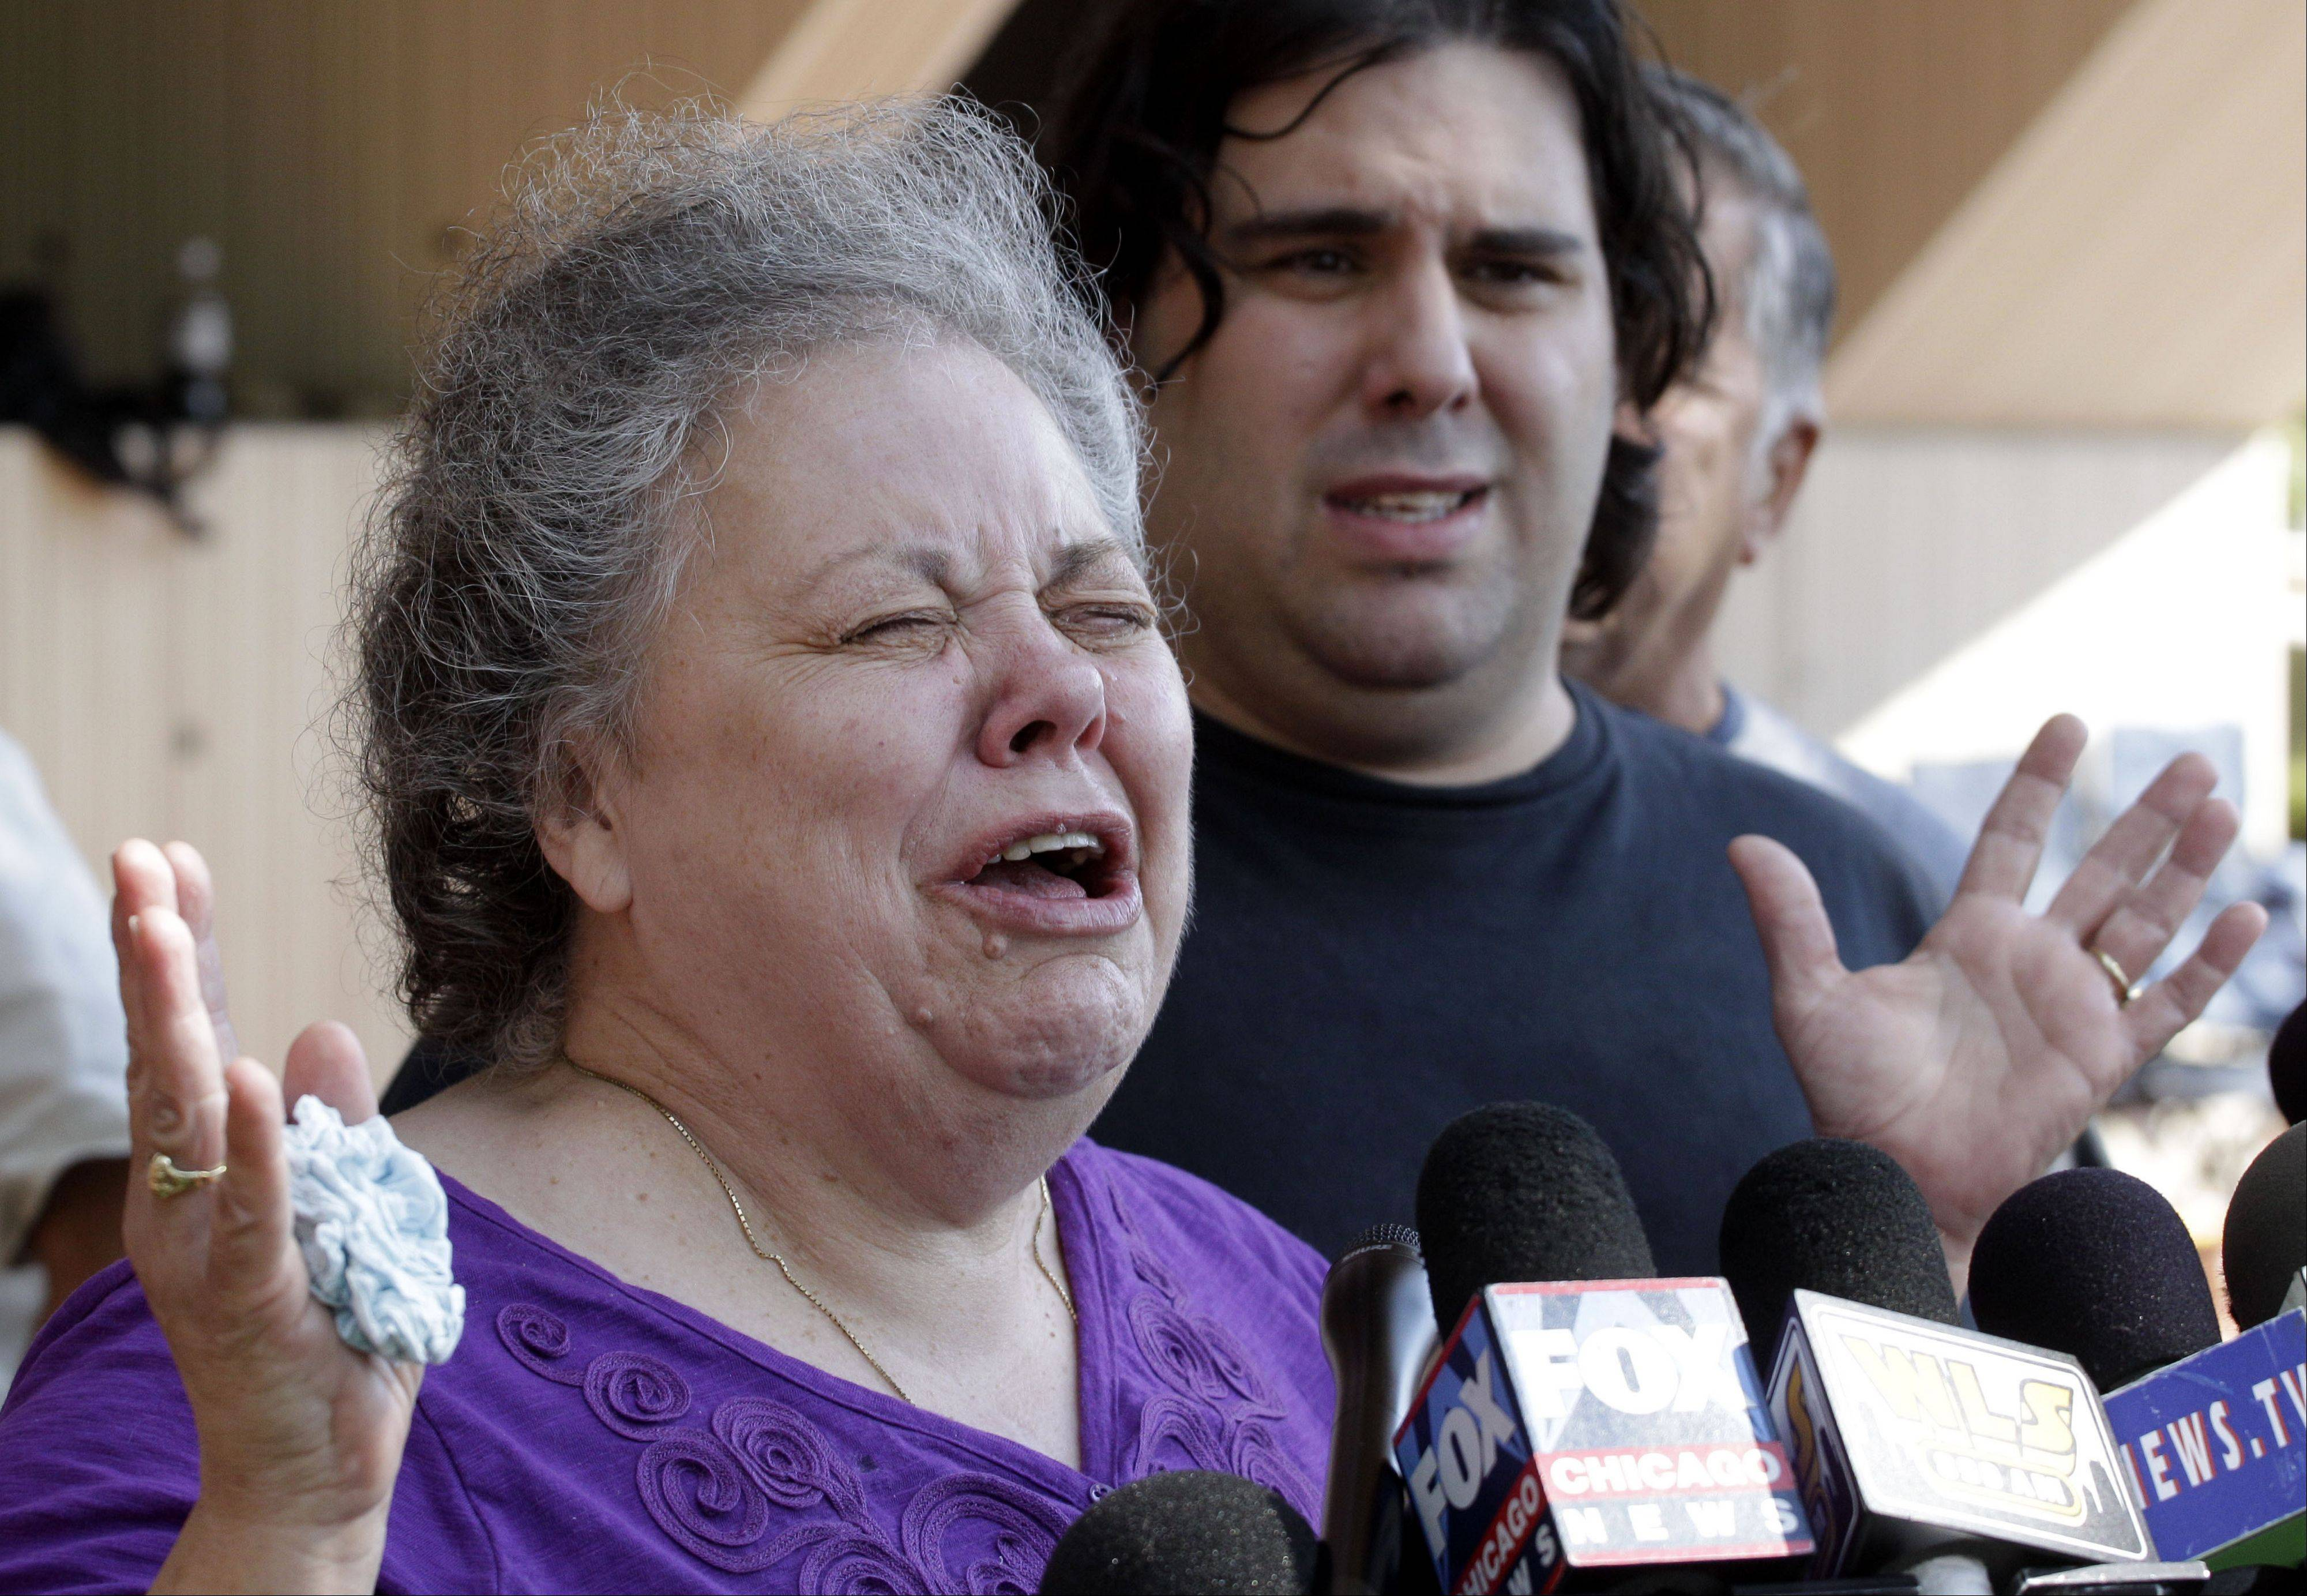 Marcia Savio, step-mother of Kathleen Savio cries outside the Will County Courthouse after word that former Bolingbrook police officer Drew Peterson was found guilty of murdering his third wife Kathleen Savio Thursday, Sept. 6, 2012, in Joliet, Ill. Marcia Savio is accompanied by Kathleen Savio�s half-brother Nicholas Savio.